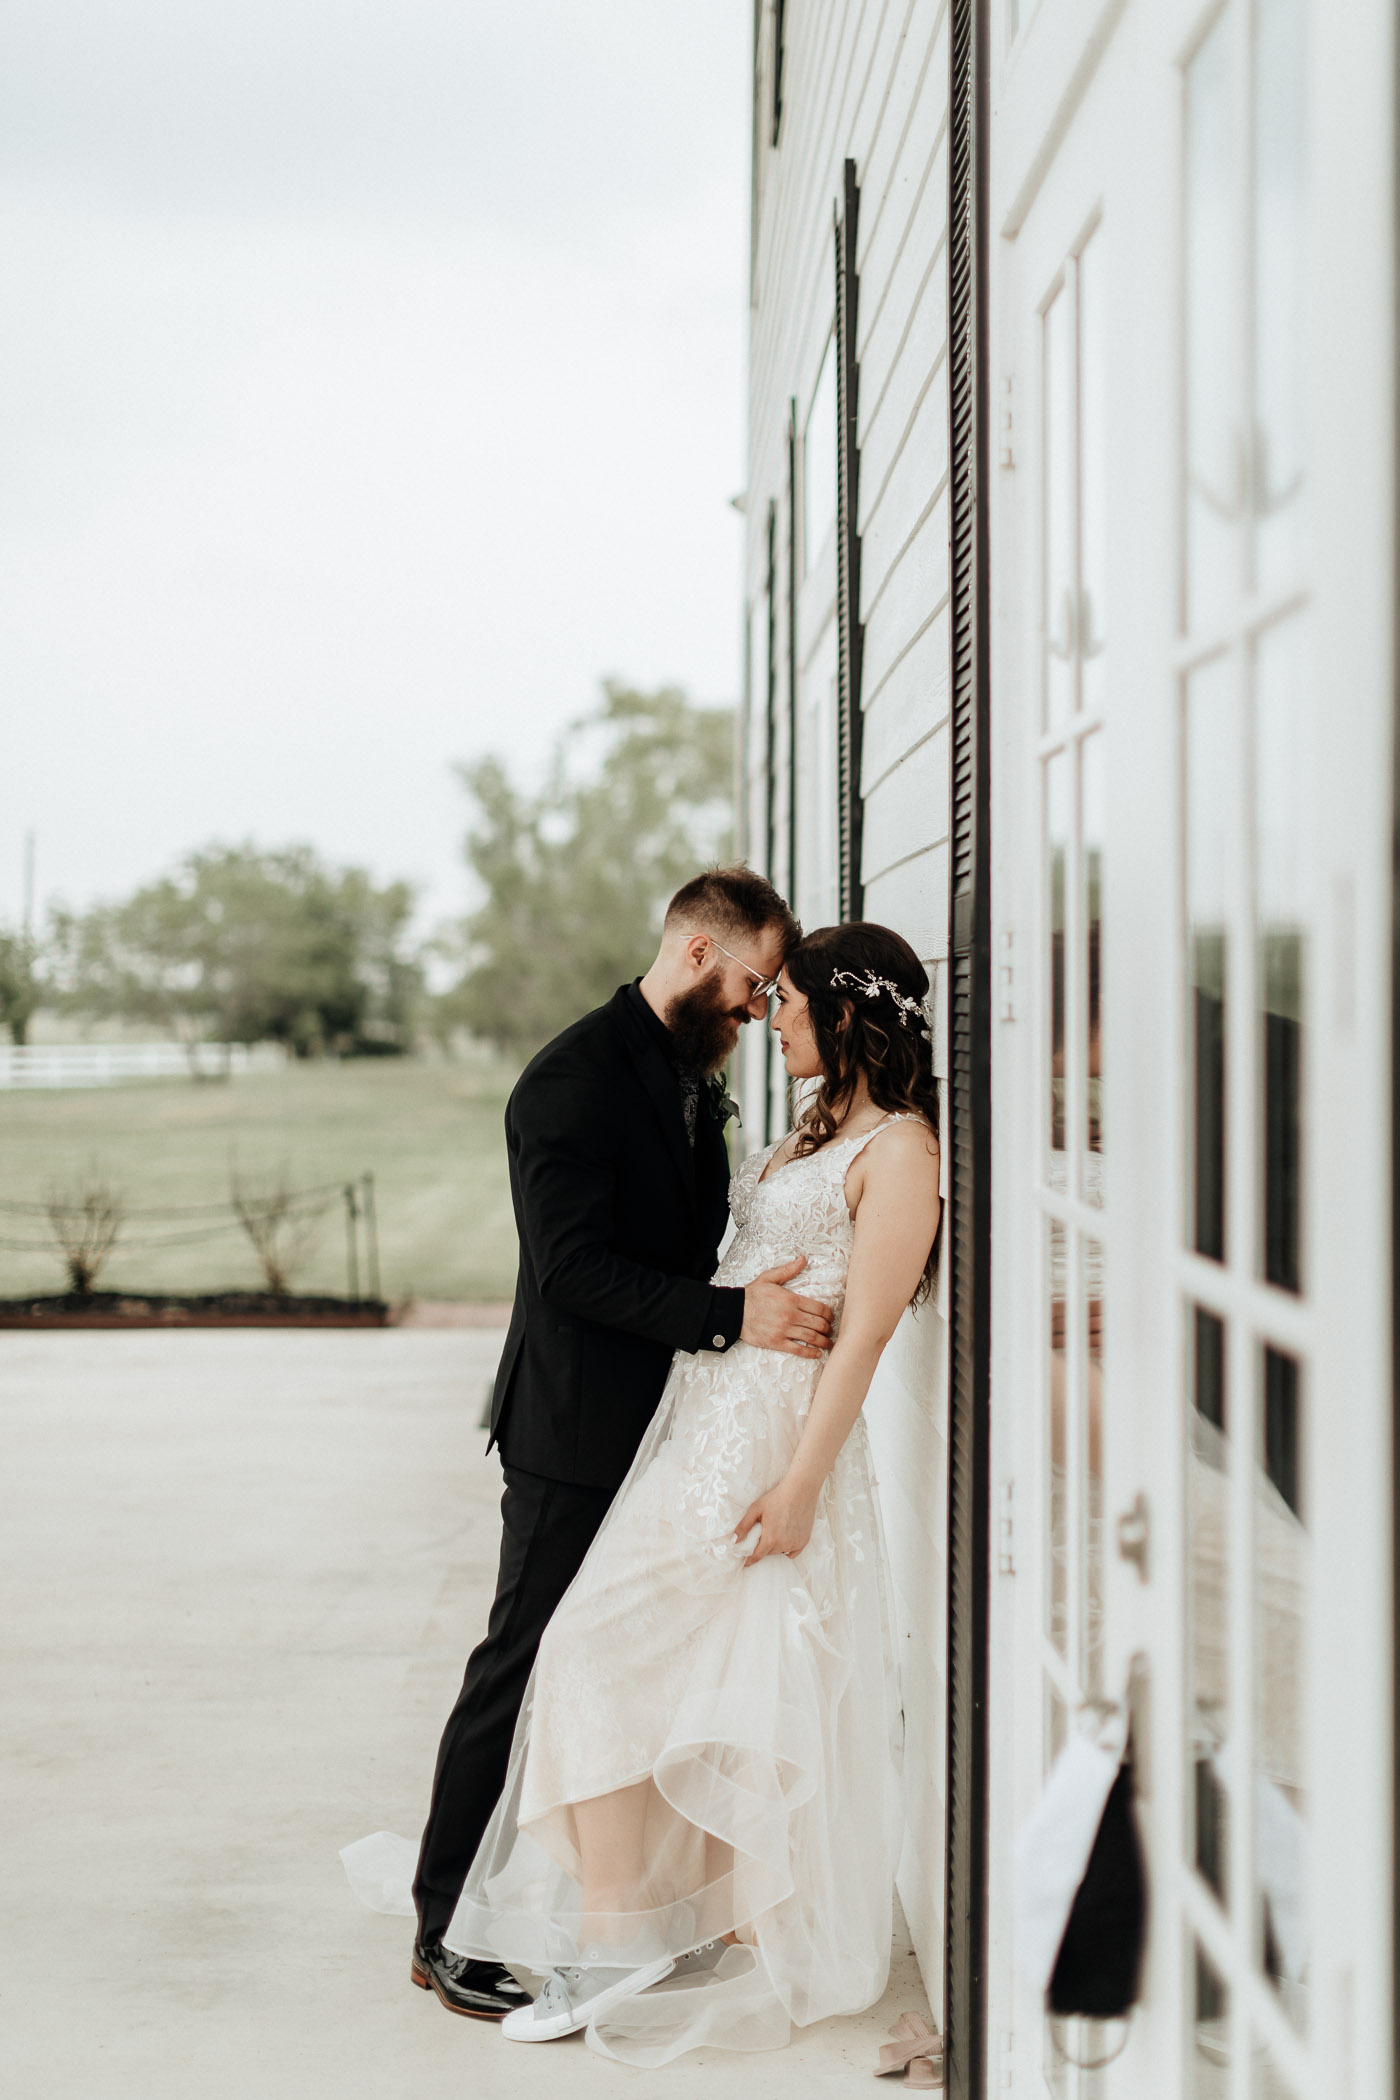 Bride and groom posing romantically for wedding portraits in DFW